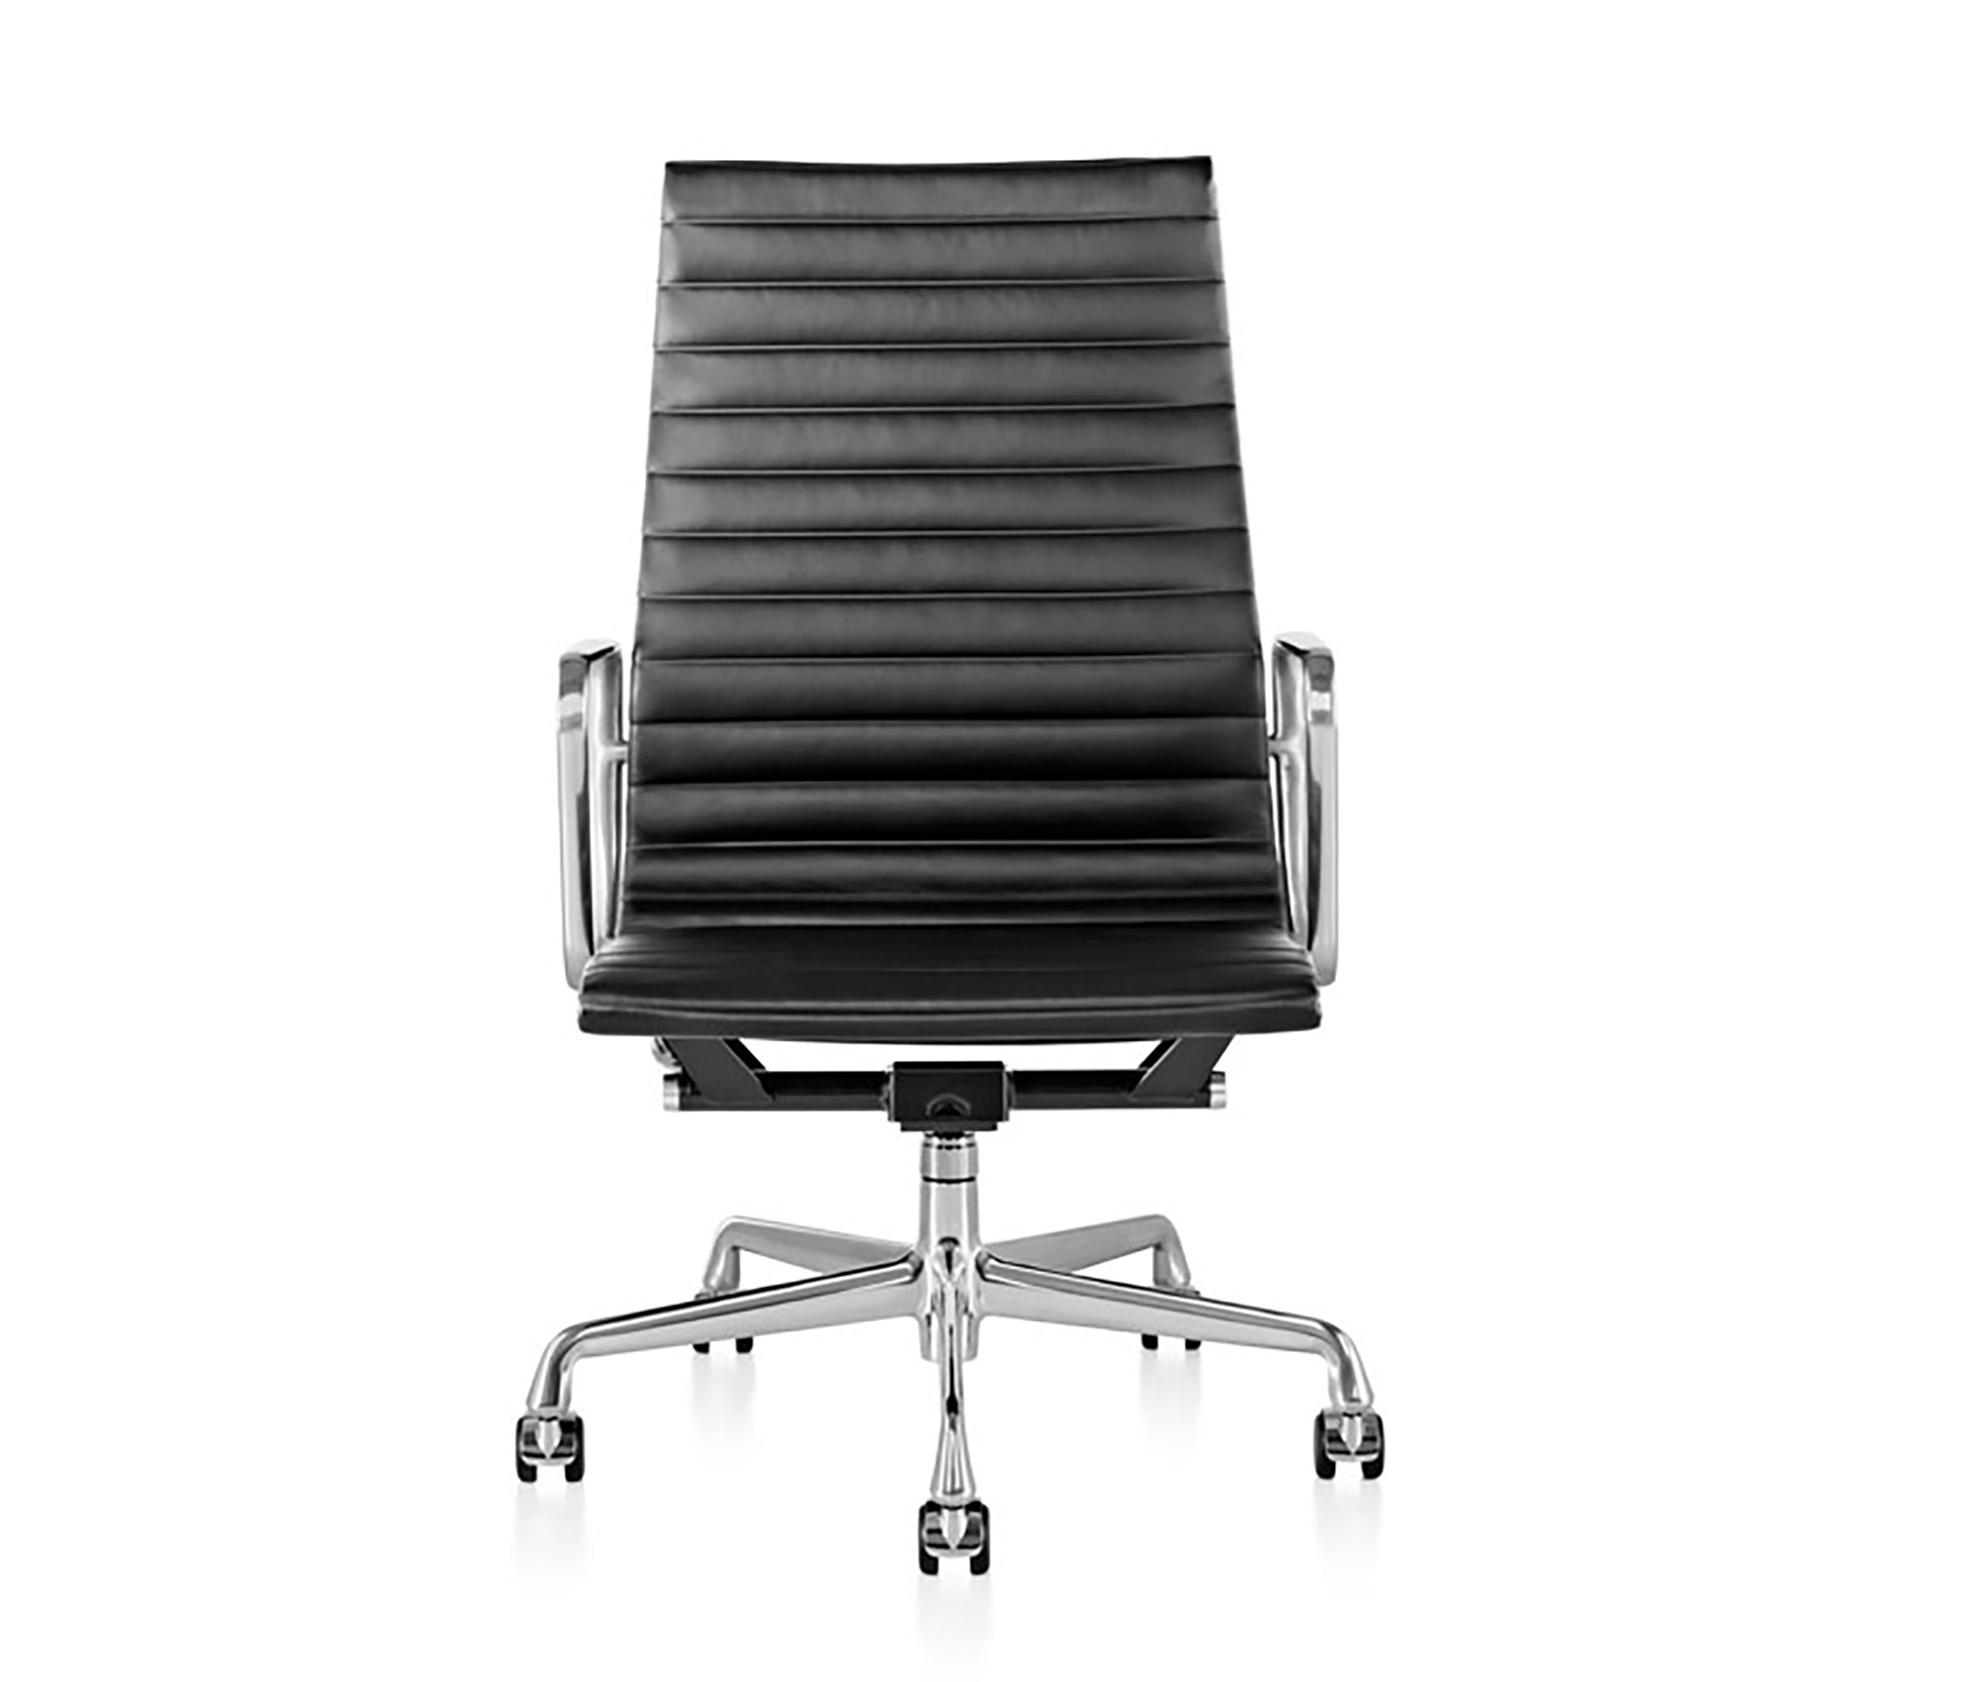 eames aluminum group executive chair executive chairs. Black Bedroom Furniture Sets. Home Design Ideas